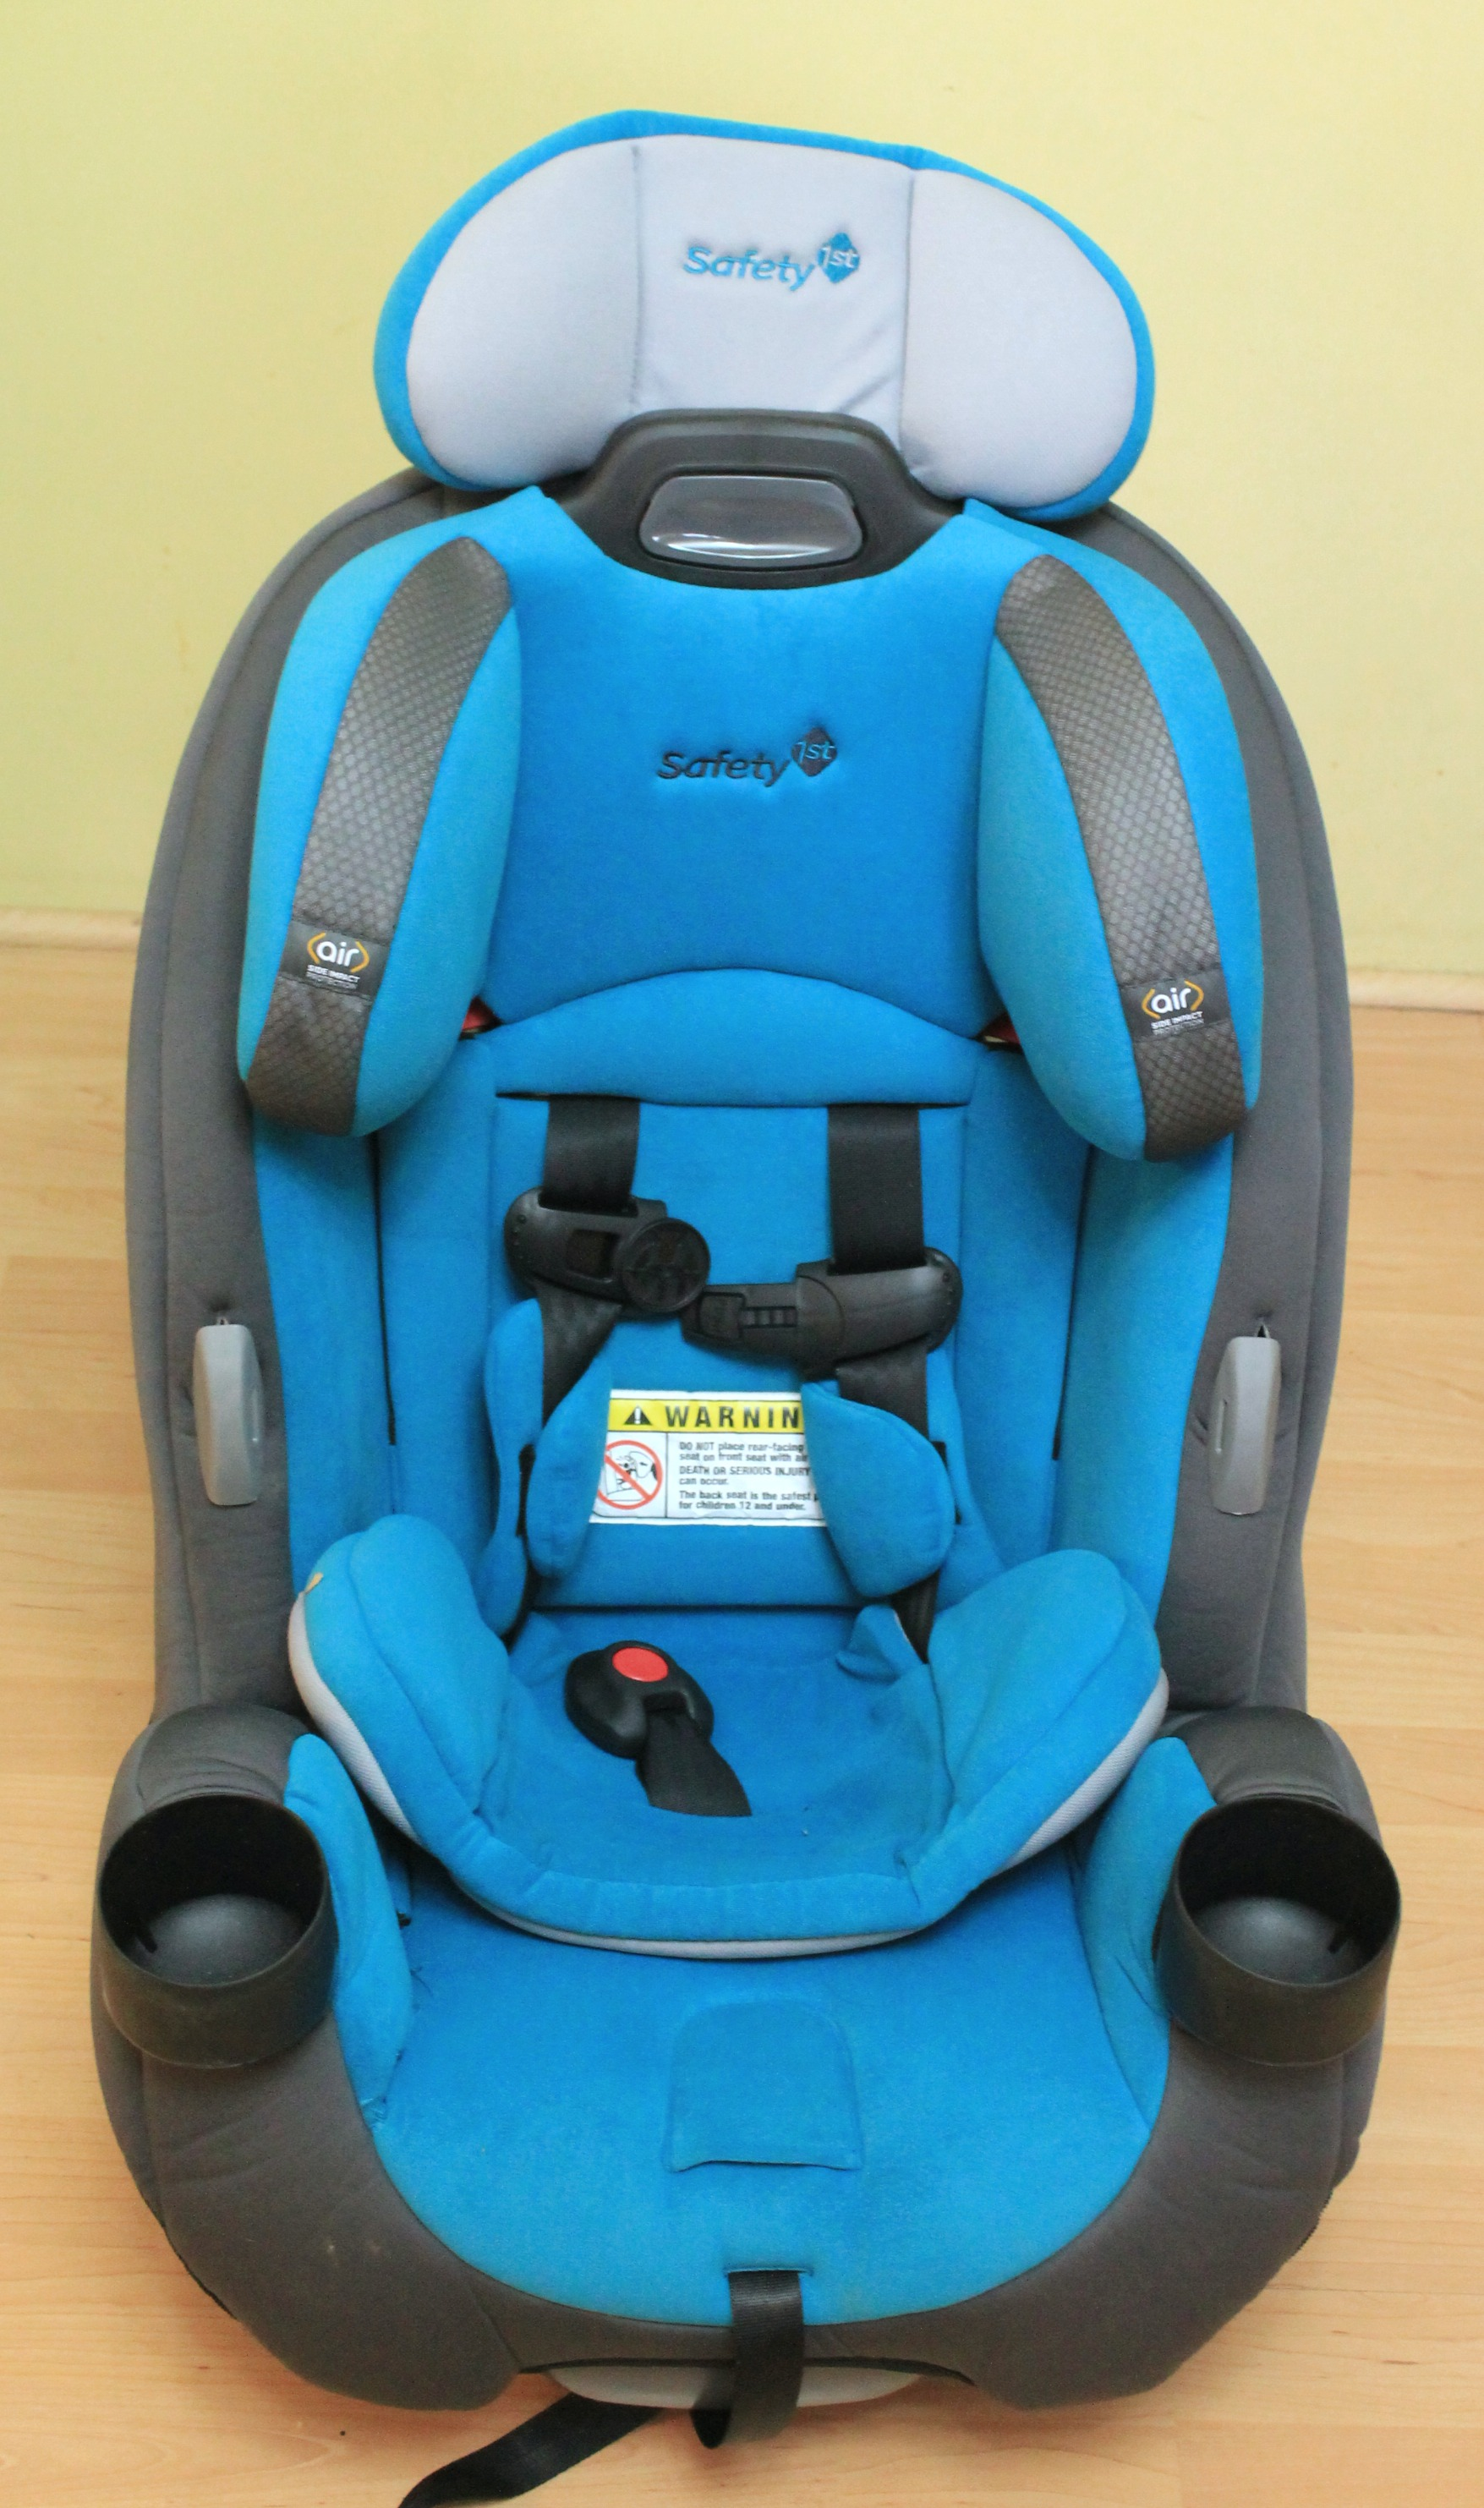 Research And Browsing Internet Registries I Decided To Add A Safety 1st Car Seat My Baby Registry When Got The Chance Review One